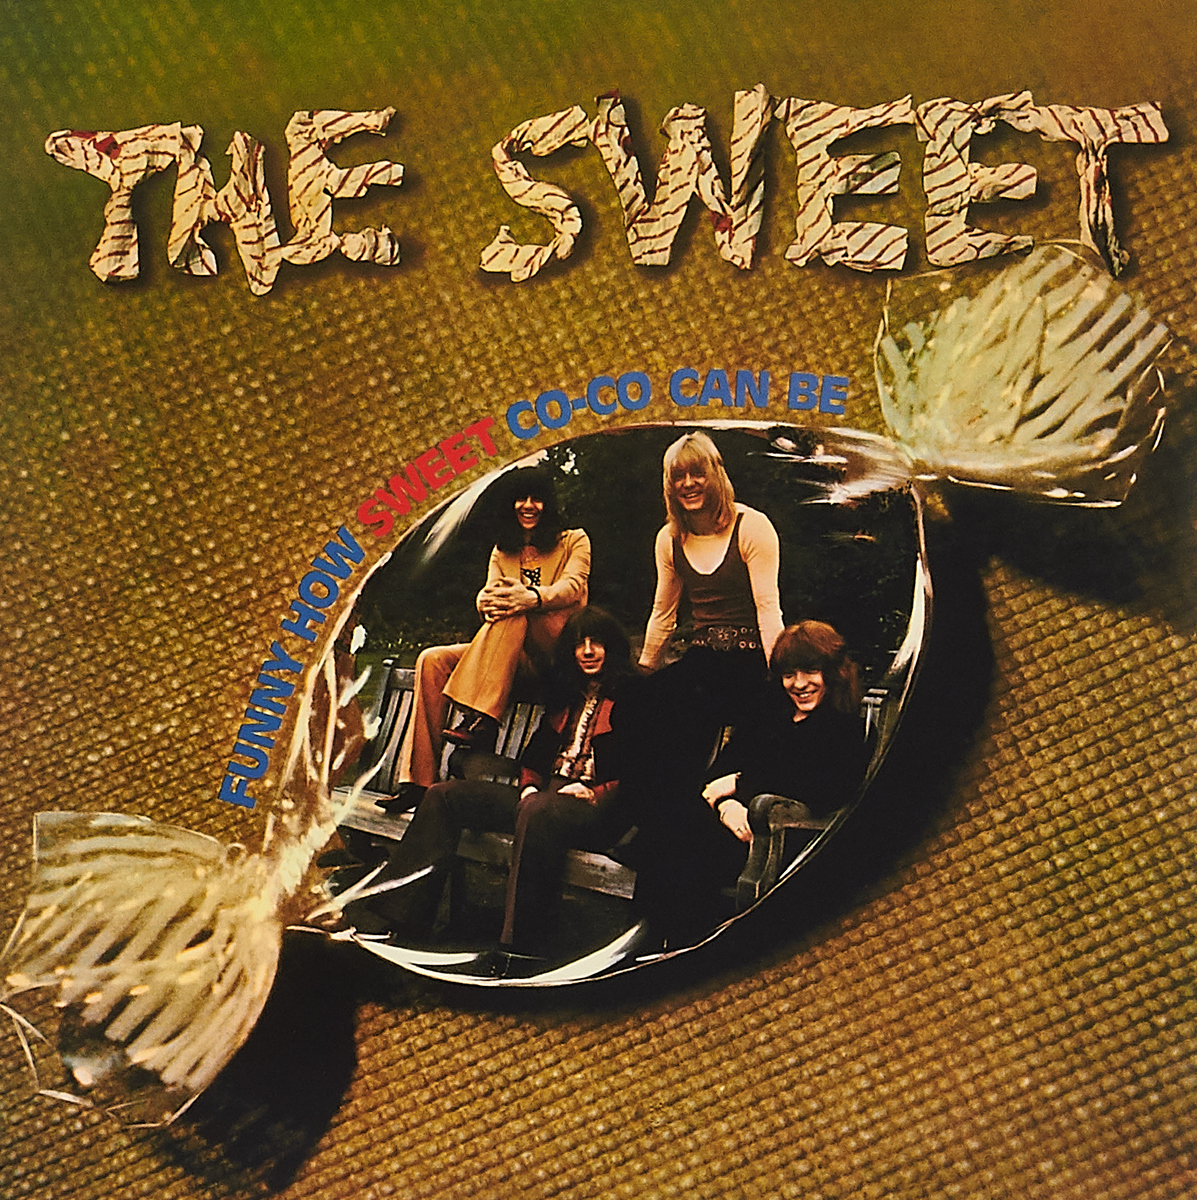 Sweet The Sweet. Funny, How Sweet Co Co Can Be (New Vinyl Edition) (LP) sweet years sy 6282l 07